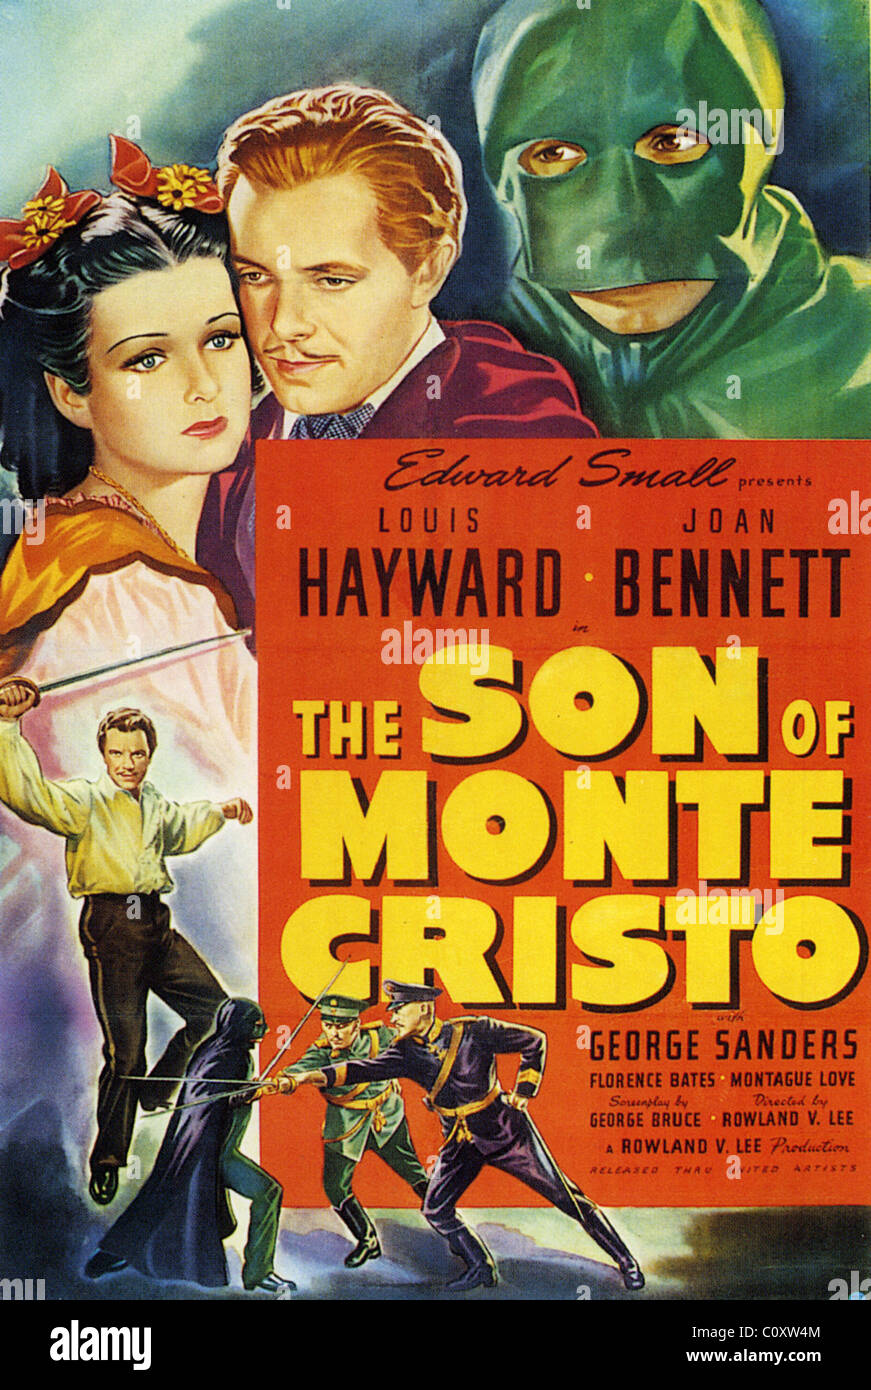 THE SON OF MONTE CRISTO  Poster for 1940 Edward Small film with Joan Bennett and George Sanders - Stock Image